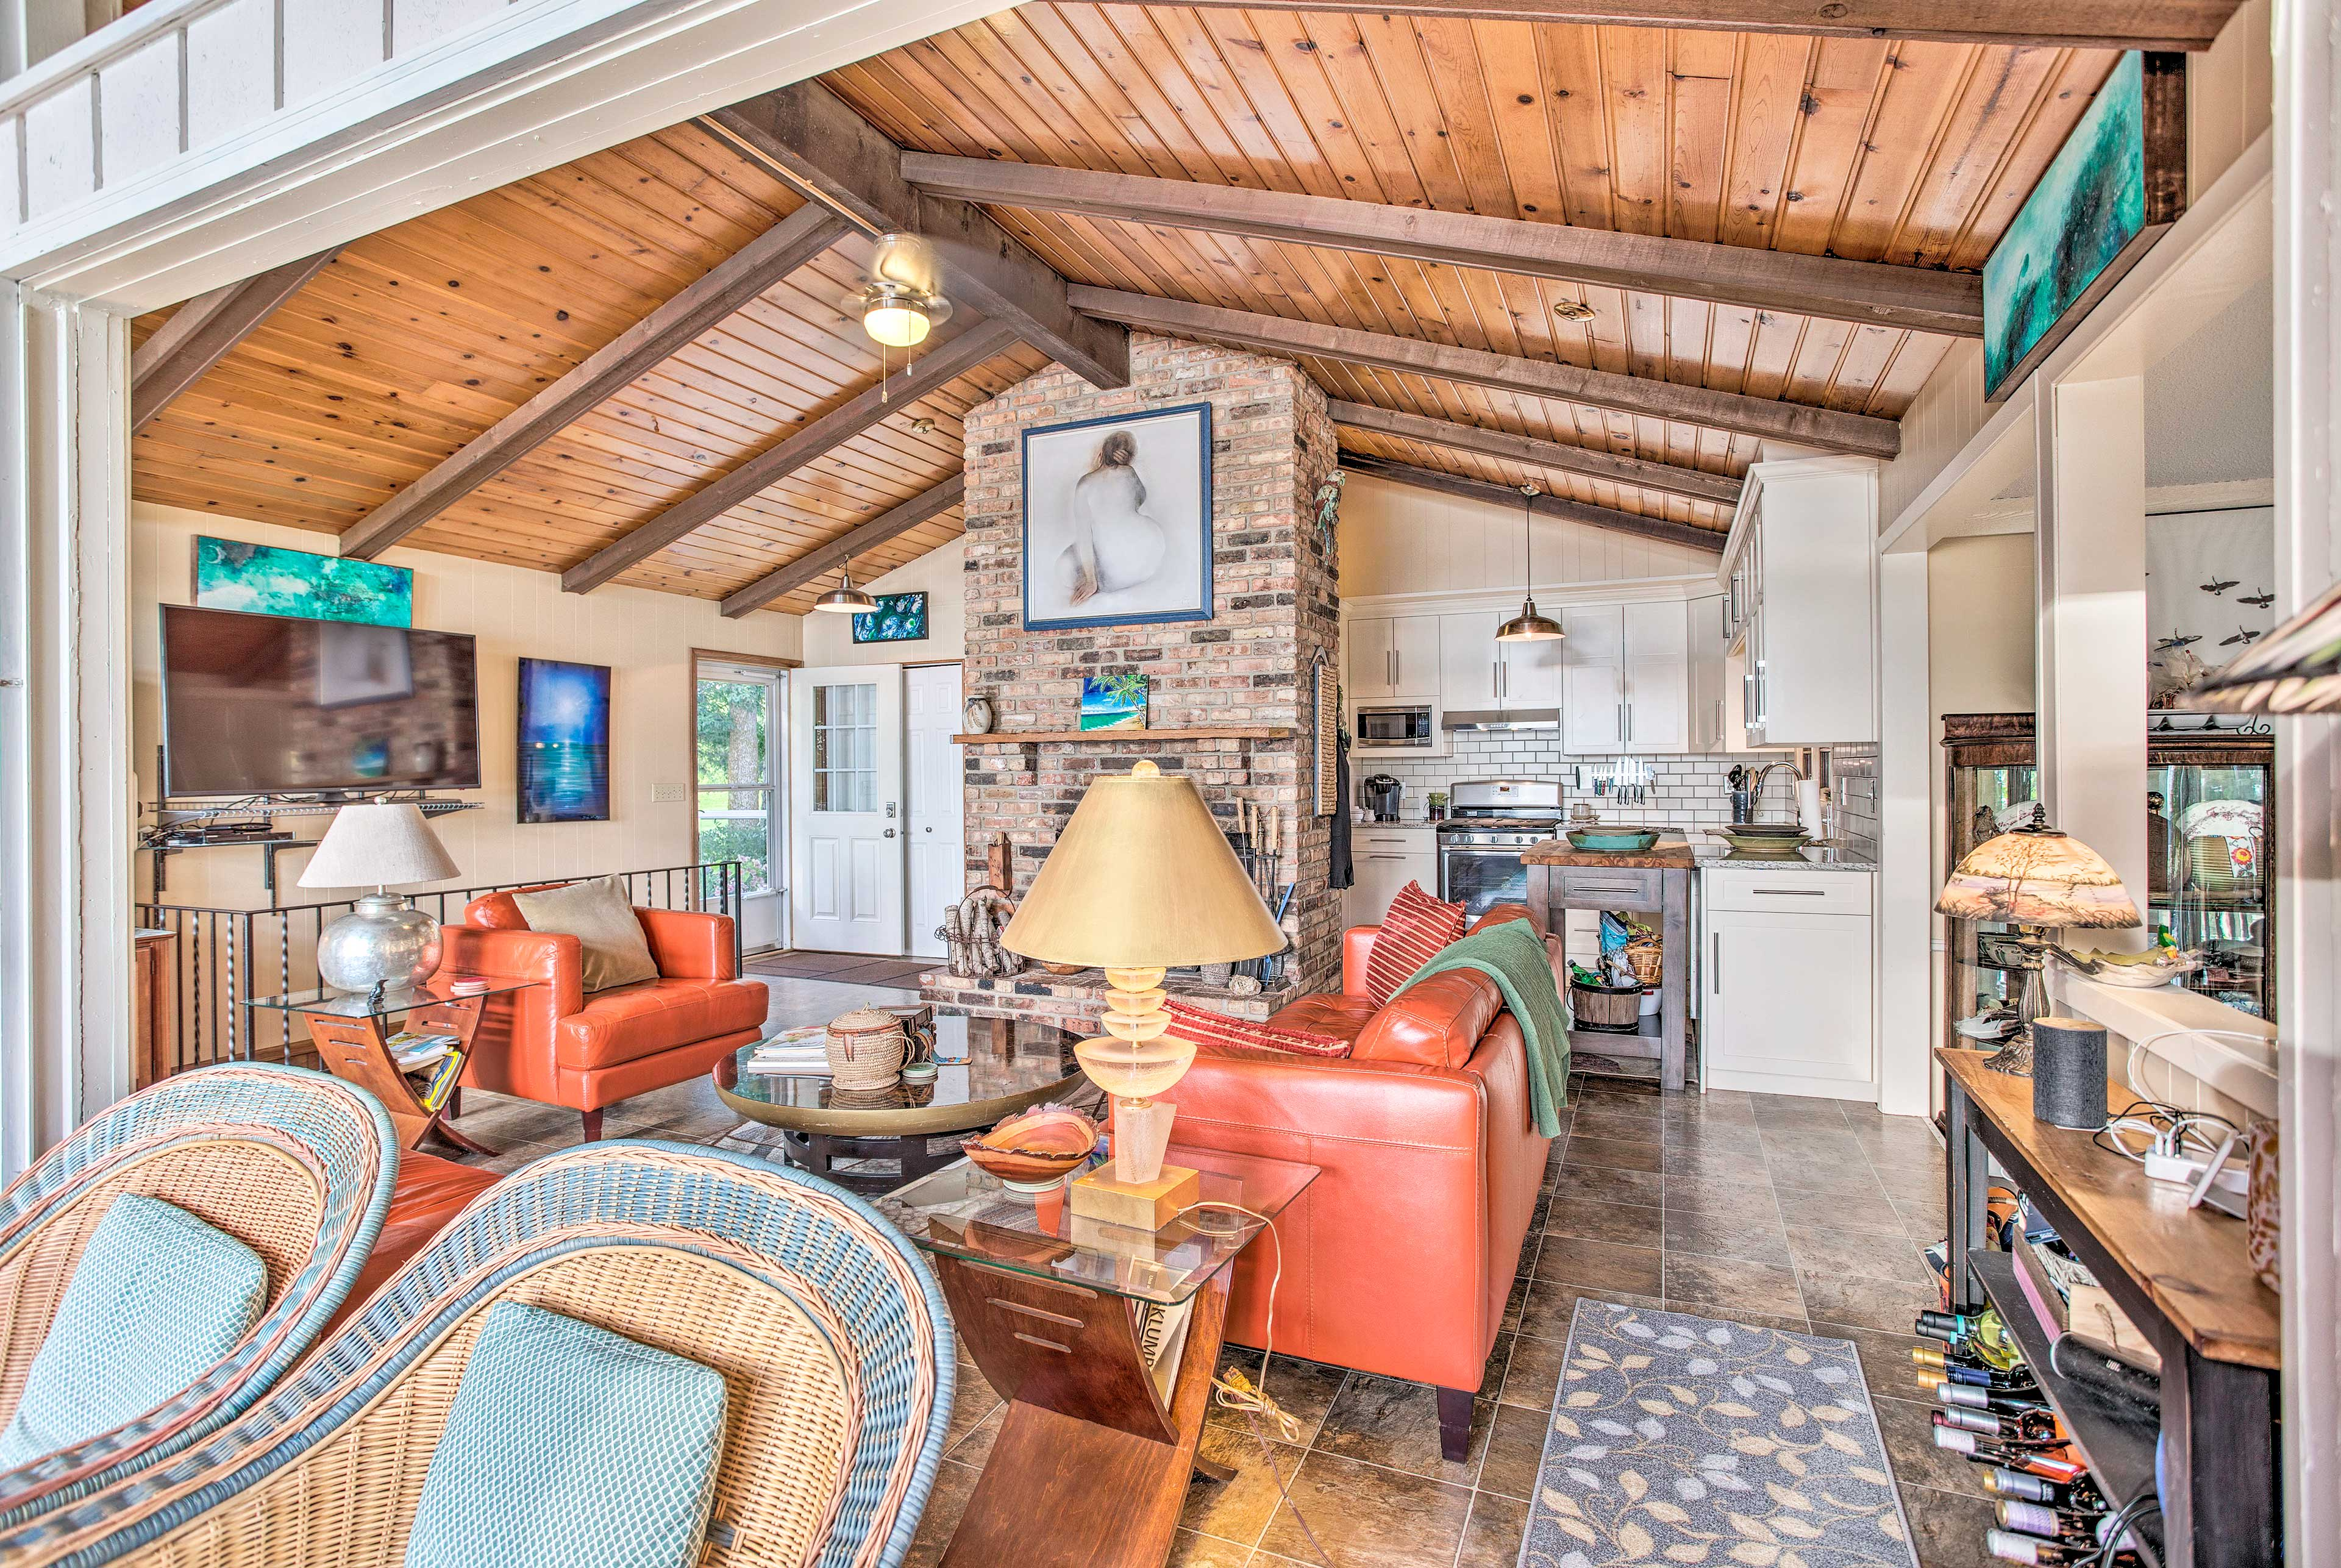 The vaulted ceiling boasts open beams, stretching over the living area.